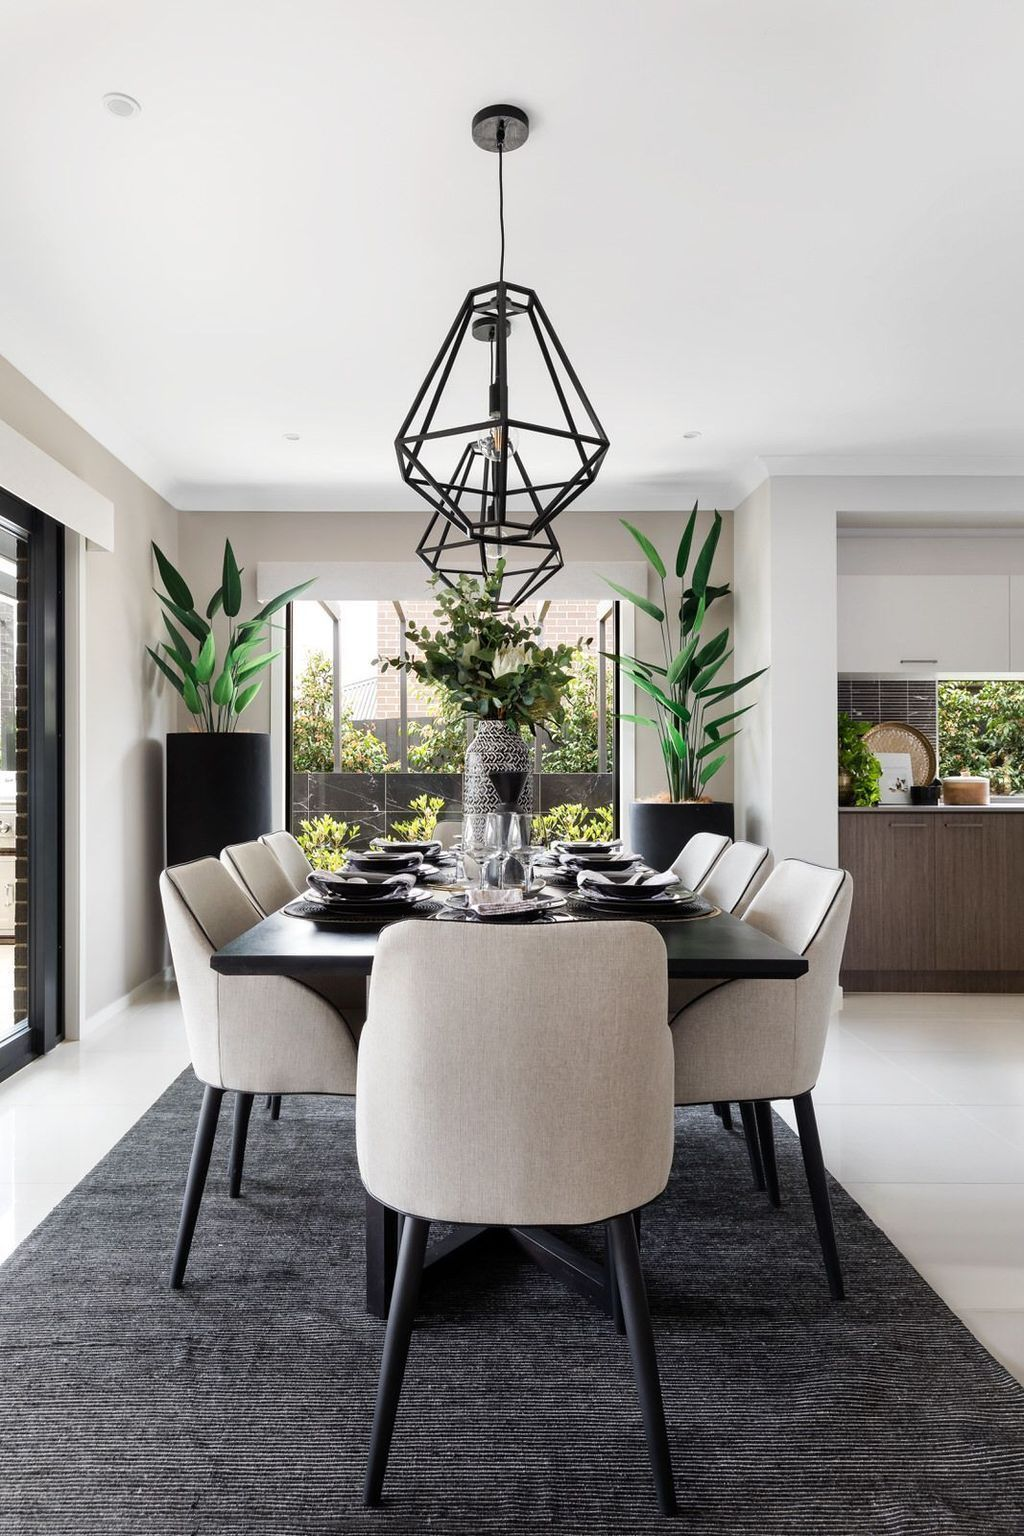 Photo of 20+ Outstanding Dining Room Set Ideas For Your Inspiration – hangiulkeninmali.com/decor